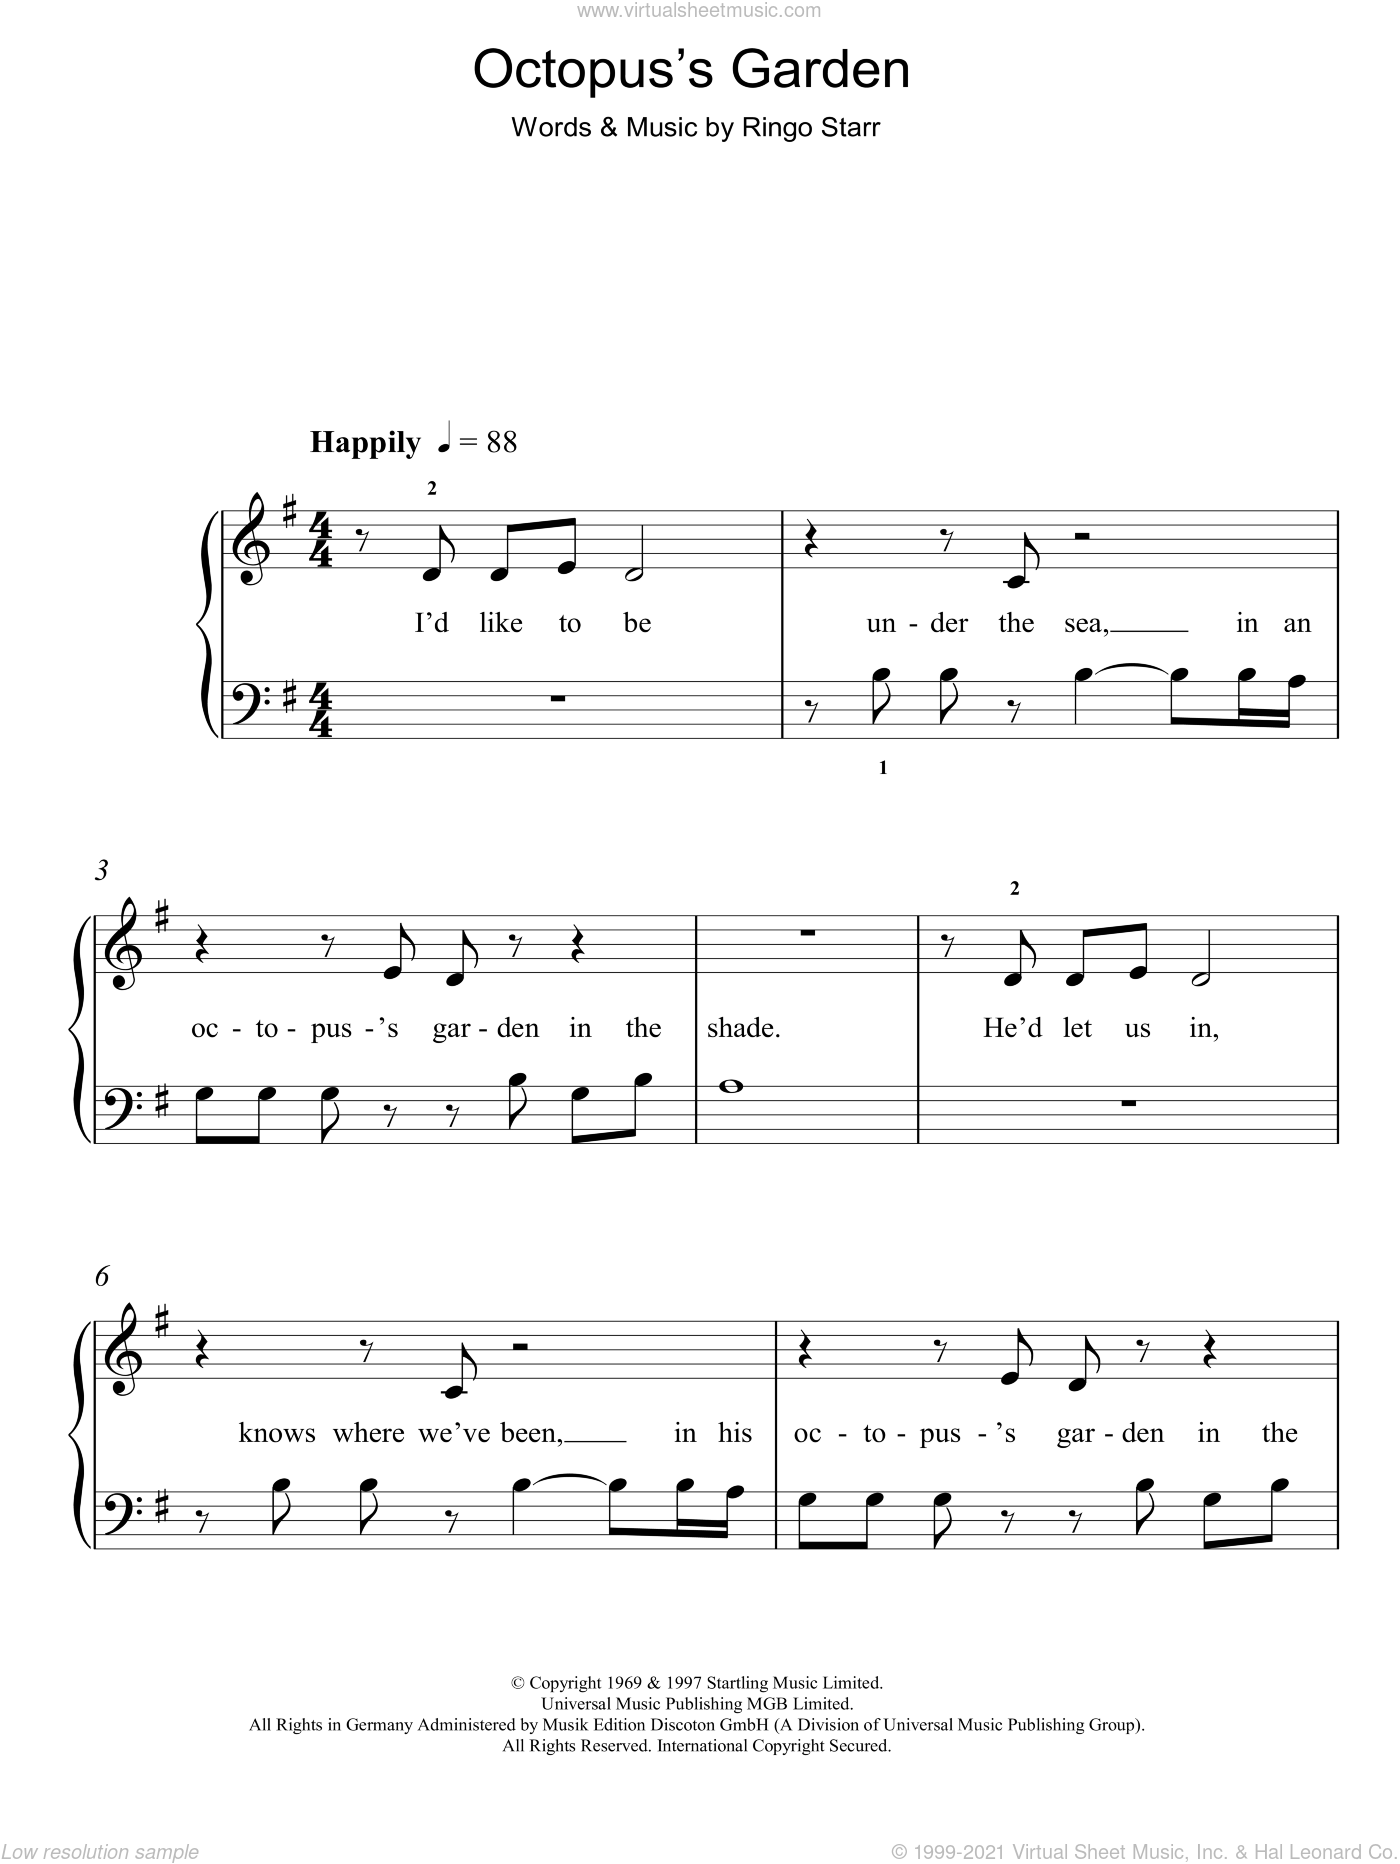 Octopus's Garden sheet music for piano solo by The Beatles and Ringo Starr, easy skill level